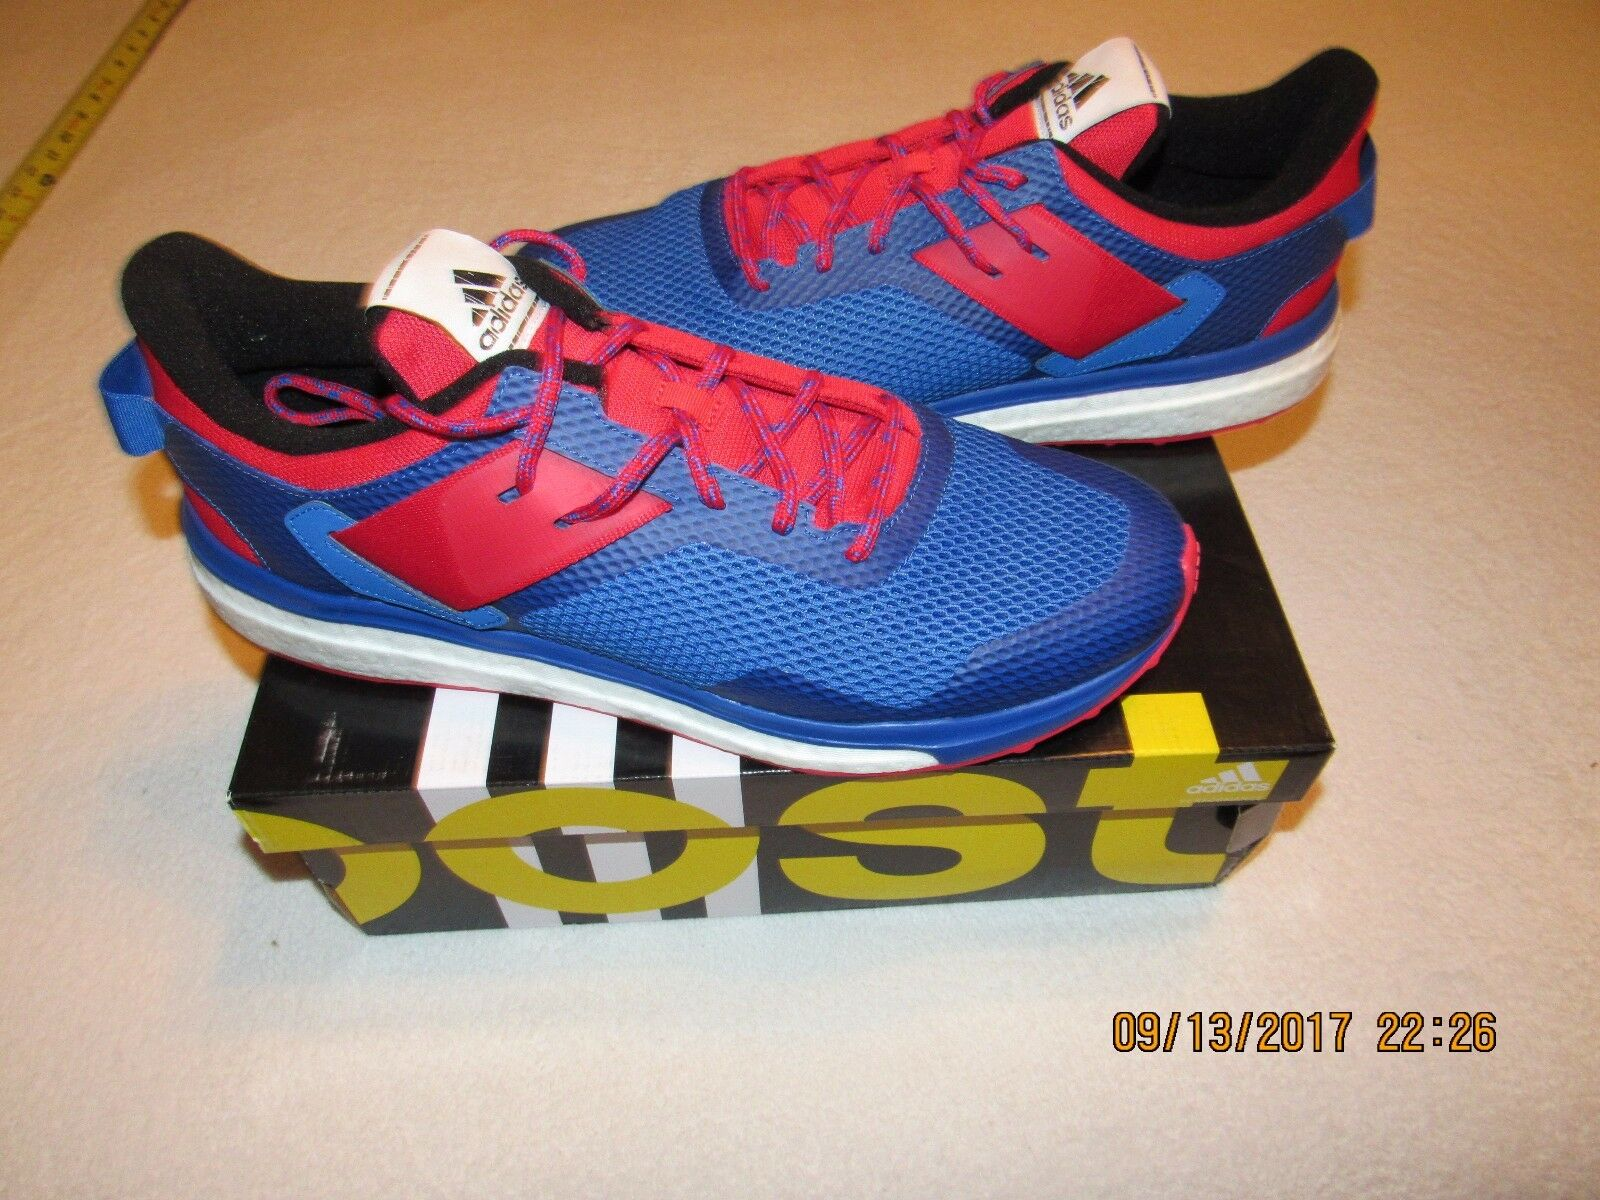 NIB MENS ADIDAS RESPONSE 3 M BOOST RUNNING SHOES SIZE 13 AQ2497 NEW IN BOX Wild casual shoes